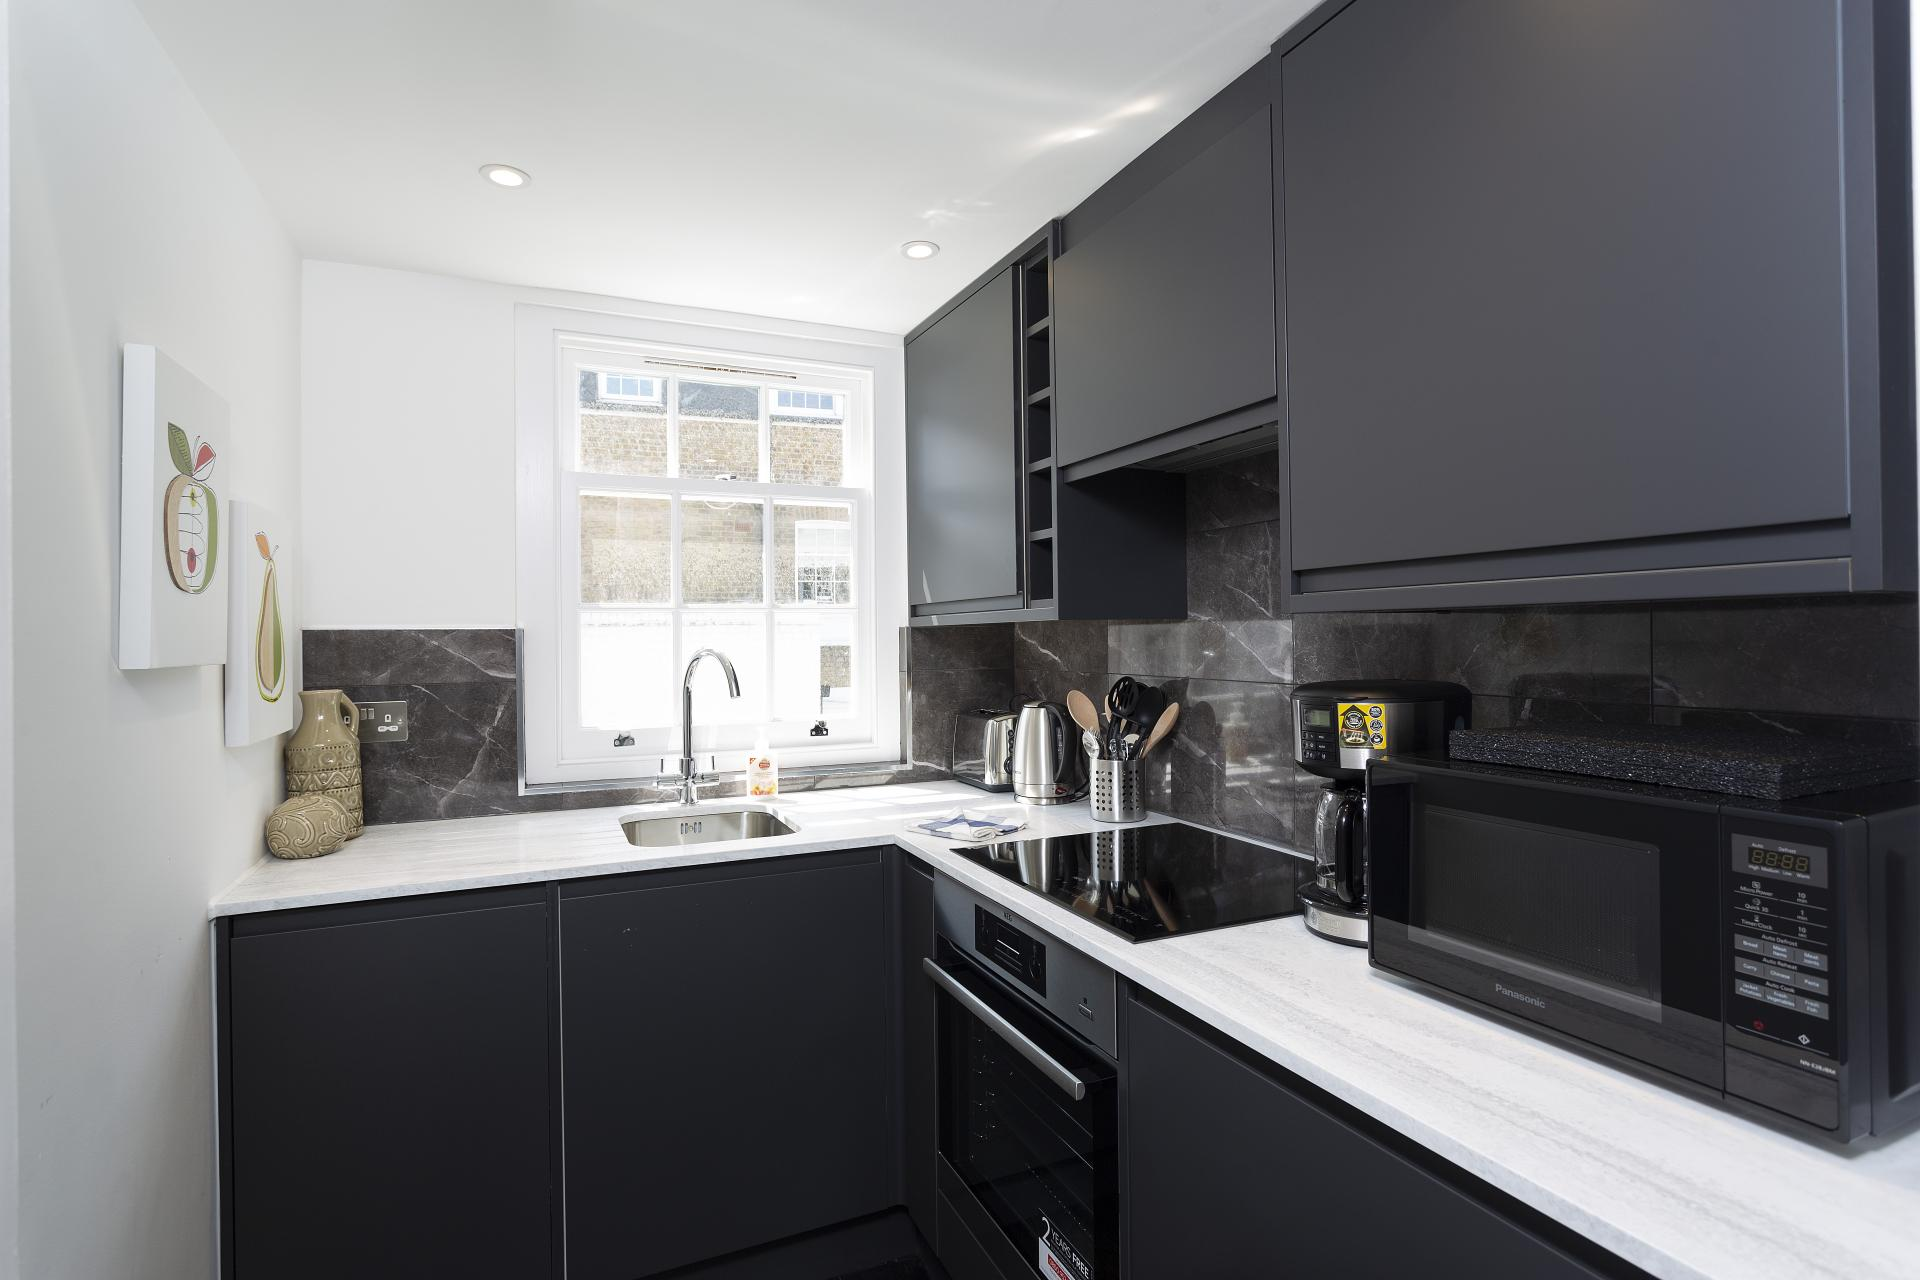 Kitchen 2 at Luxury Knightsbridge House, Knightsbridge, London - Citybase Apartments